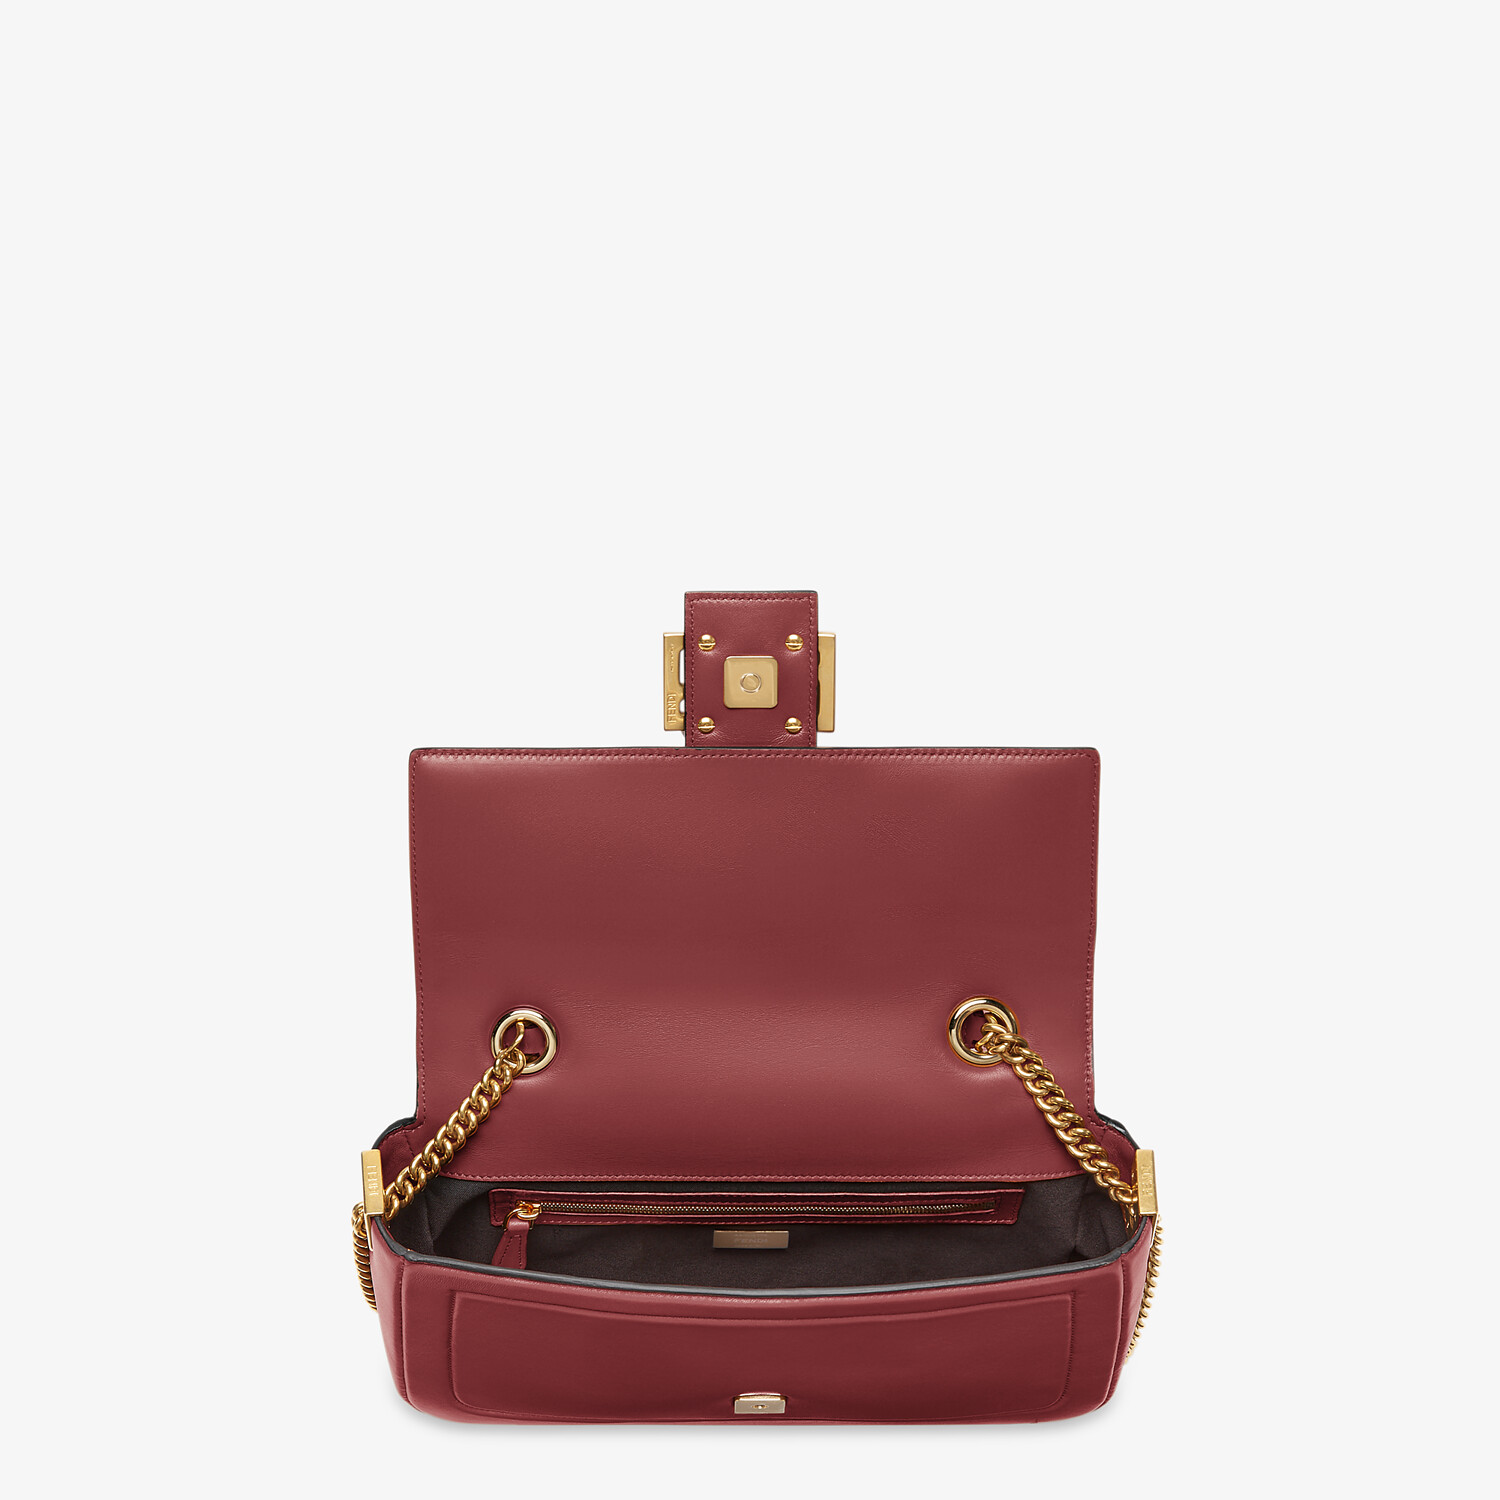 FENDI BAGUETTE CHAIN - Red nappa leather bag - view 4 detail